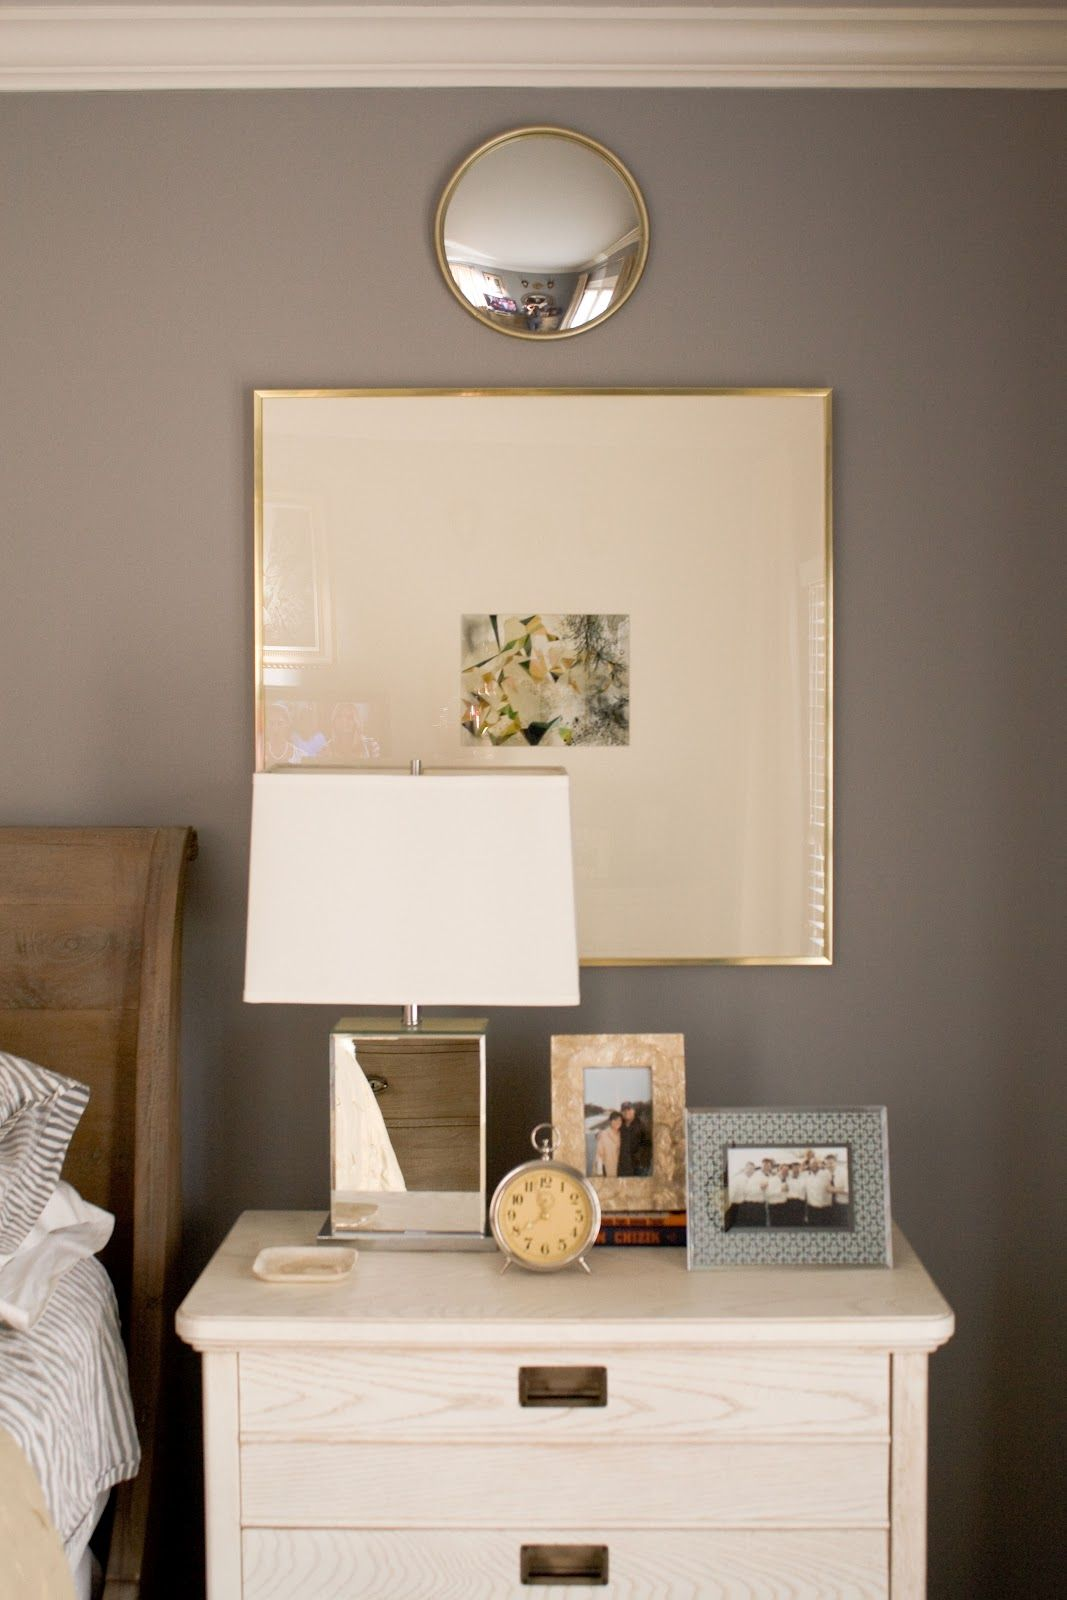 Schlafzimmer Kommode Pinterest Bedside Table Vignette Bedroom Schlafzimmer Pinterest